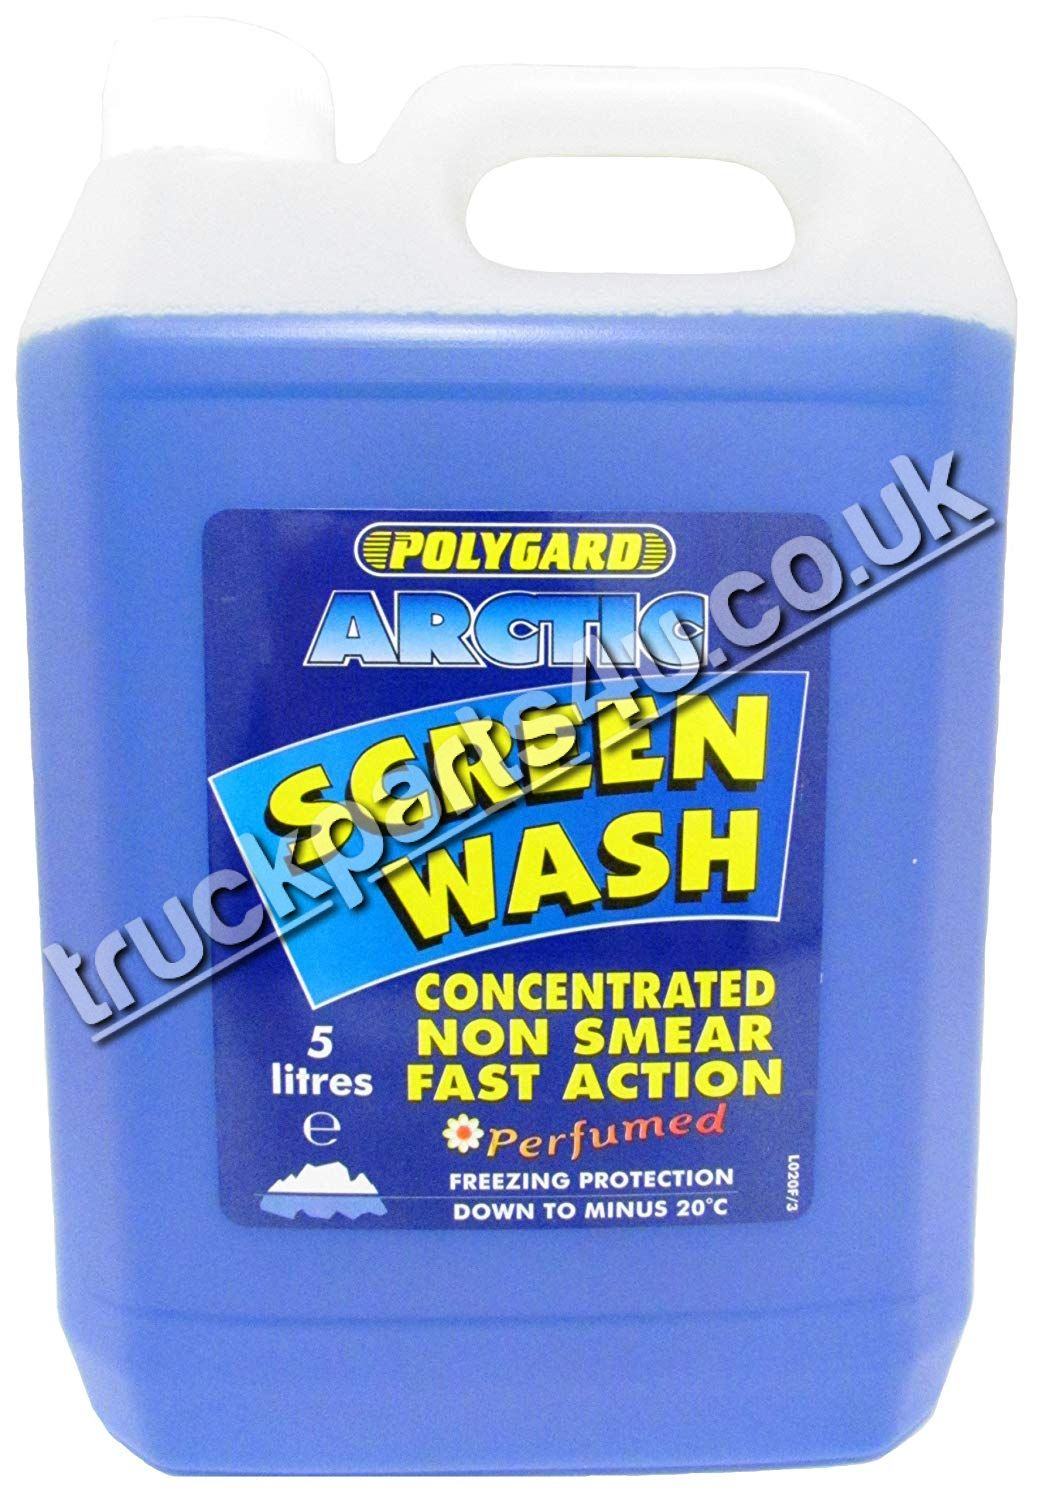 TP4U - Polygard Arctic Screenwash 5L Concentrated Non Smear